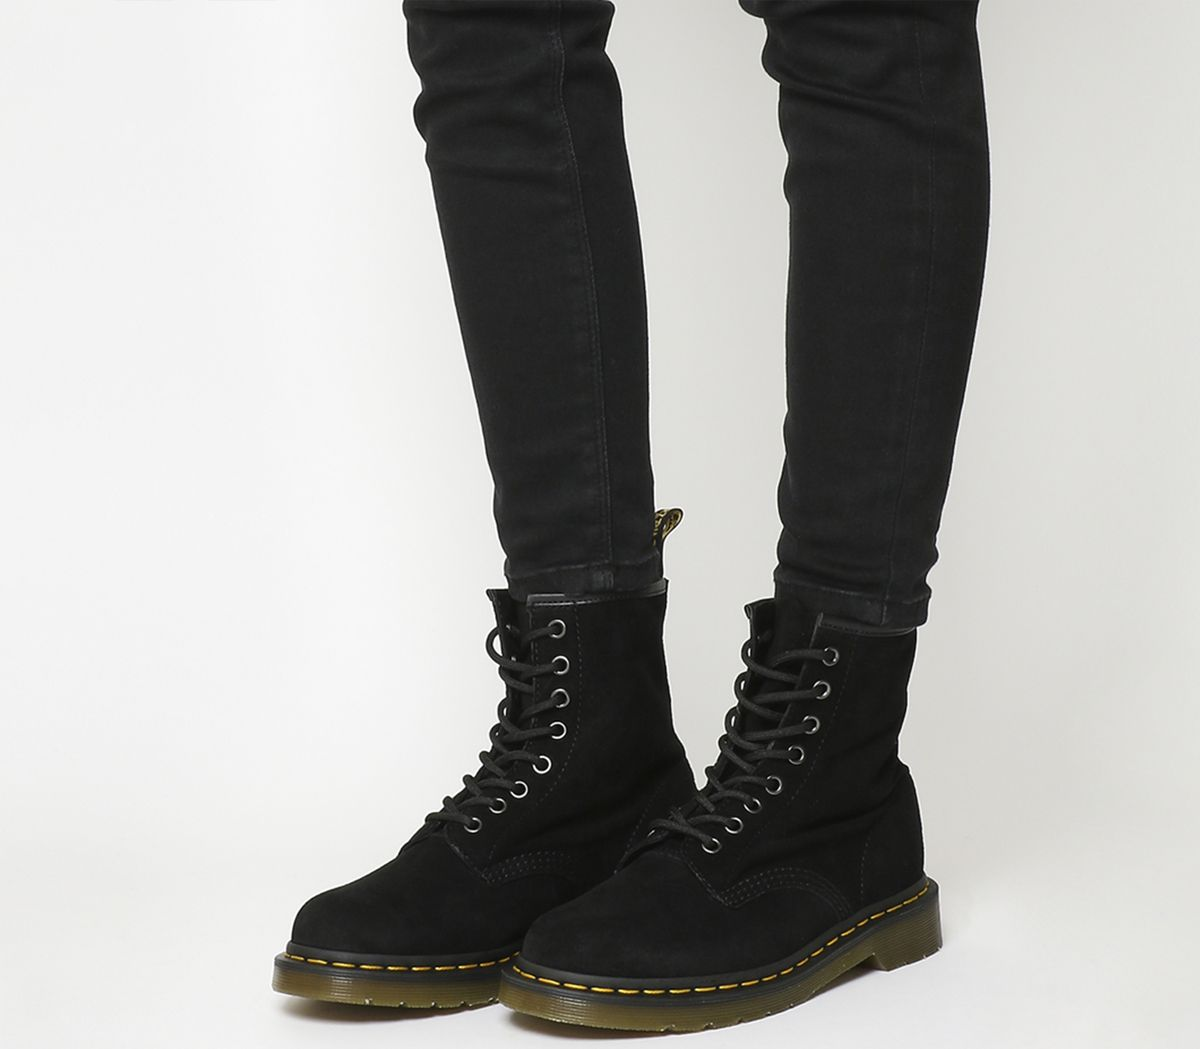 4acbab36bcf9 Dr. Martens 8 Eyelet Lace Up Boots Black Suede - Ankle Boots